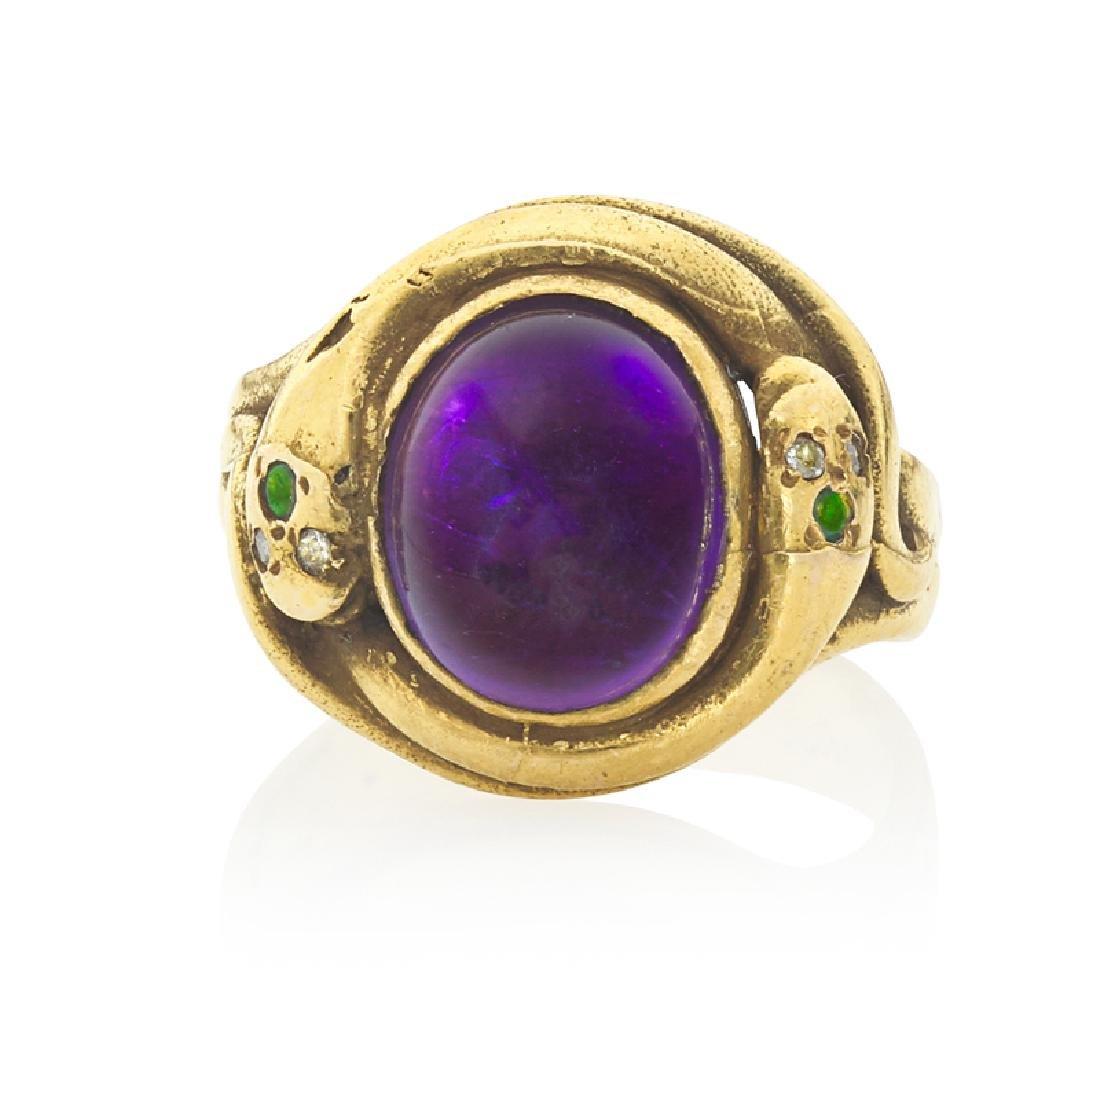 VICTORIAN AMETHYST & YELLOW GOLD SERPENT RING